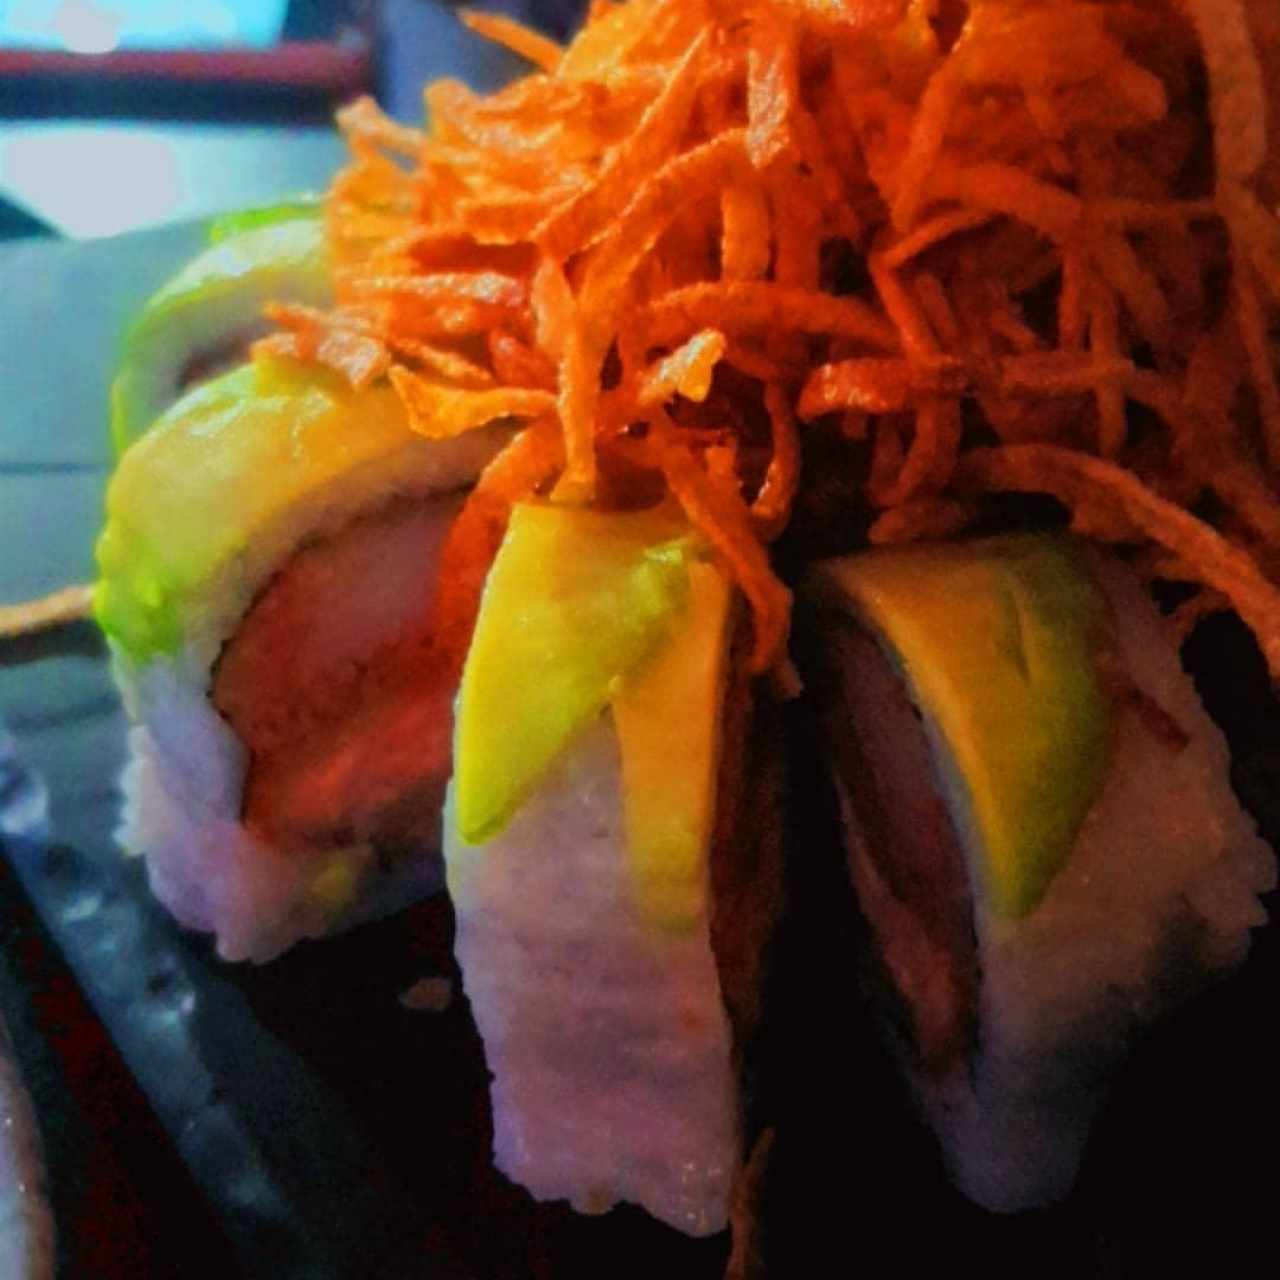 Sushi Bar - King roll